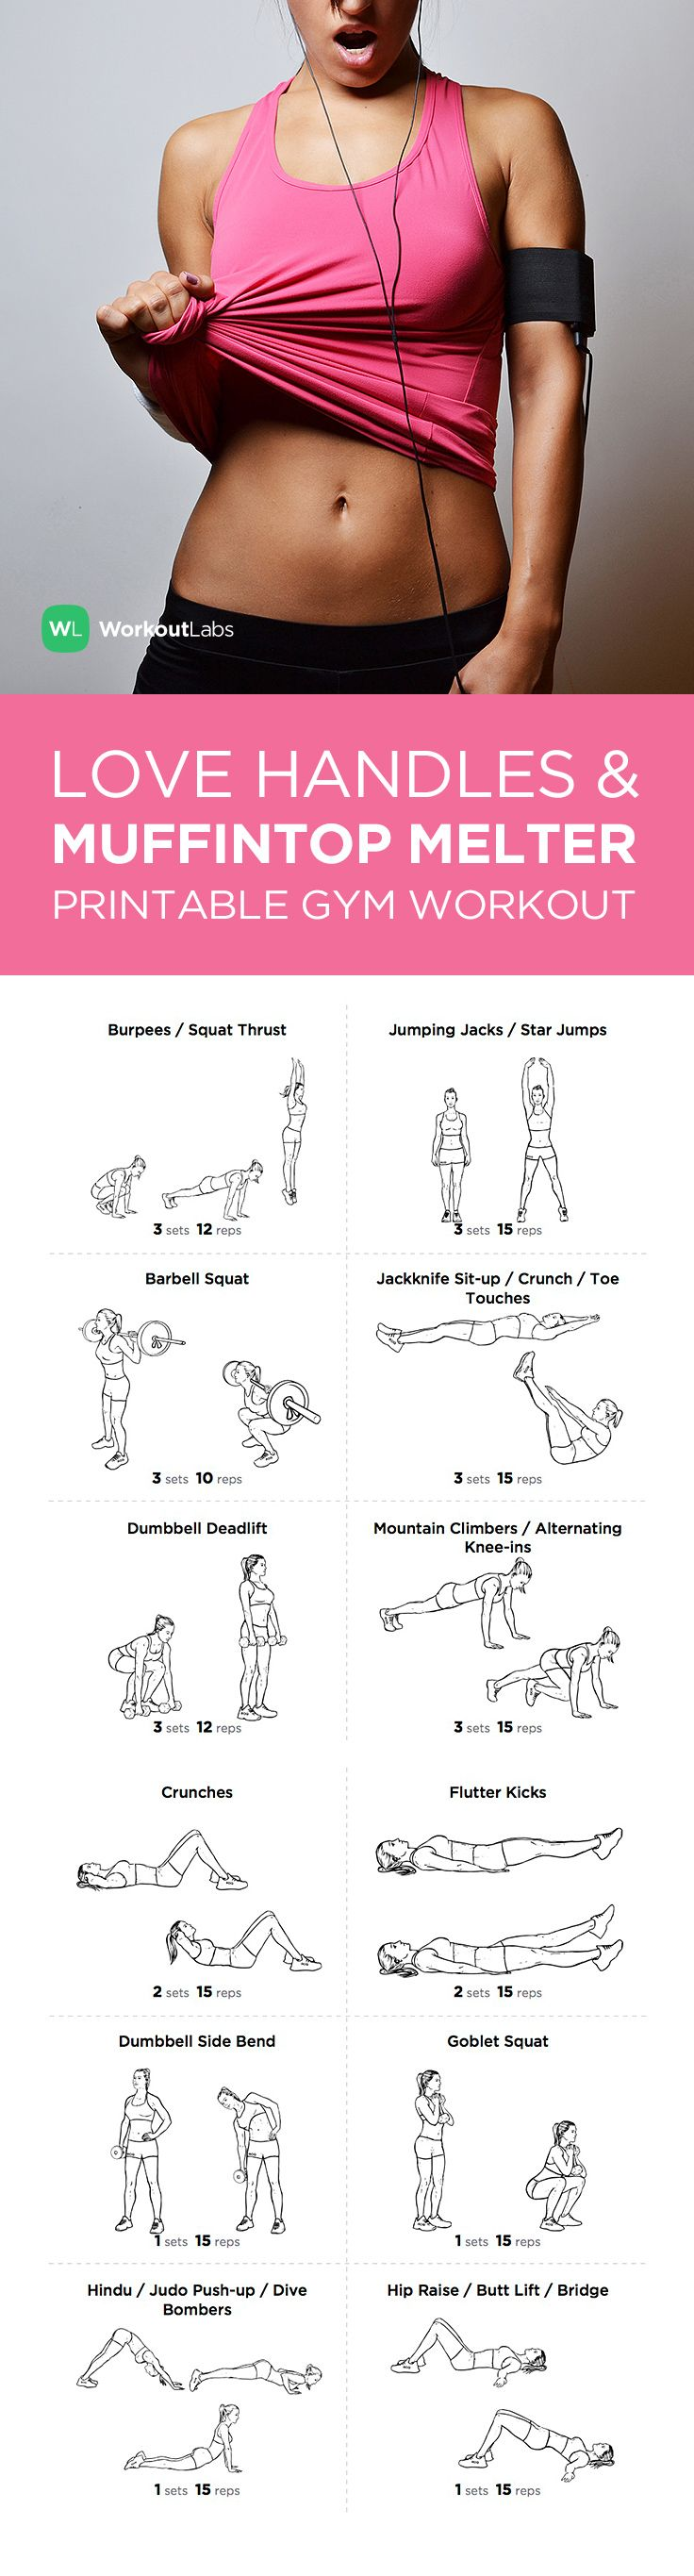 Visit http://WorkoutLabs.com/workout-plans/love-handles-muffin-top-melter-printable-gym-workout-for-women/ for a FREE PDF of this Love Handles